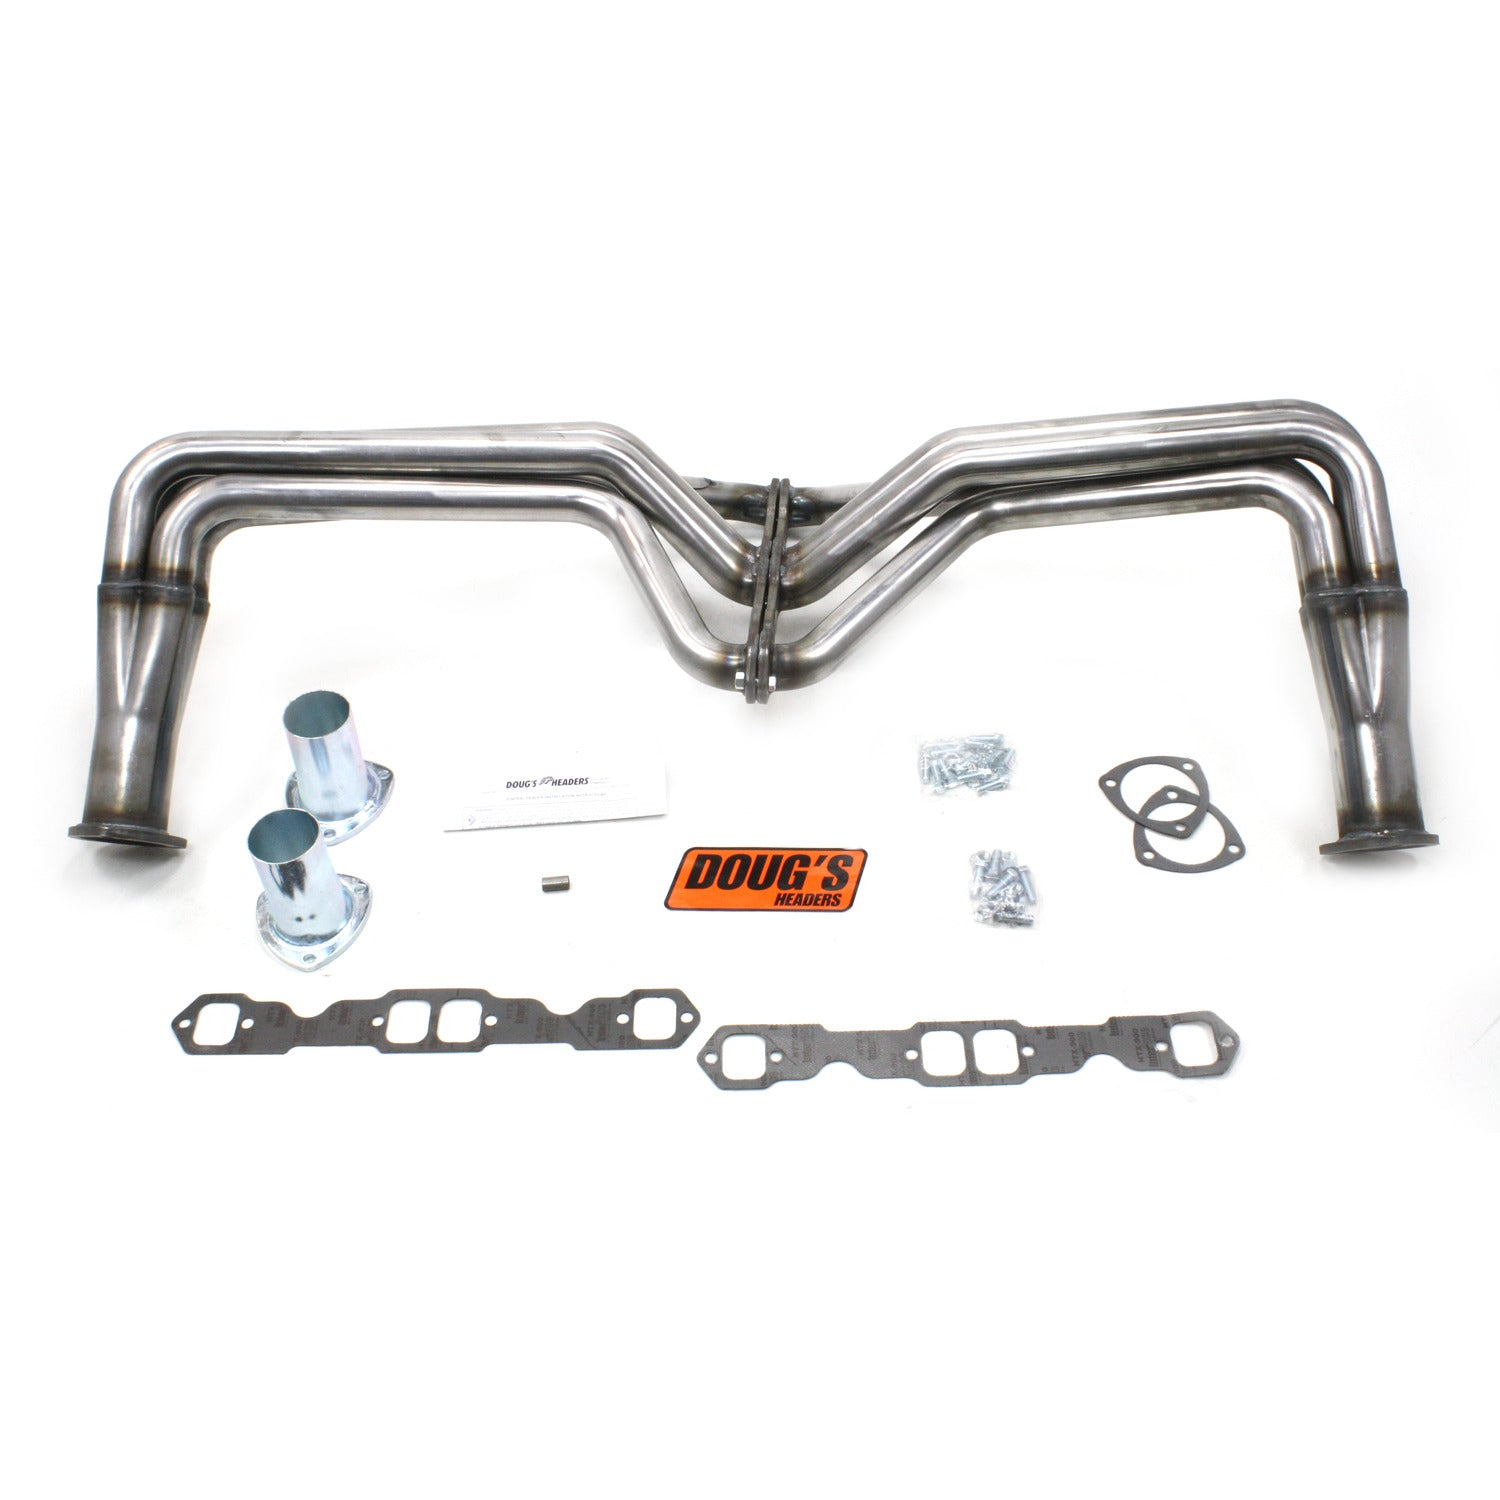 "Doug's Headers D355-R 1 3/4"" 4-Tube Full Length Header Chevrolet Pass Small Block Chevrolet 55-57 Raw Steel"